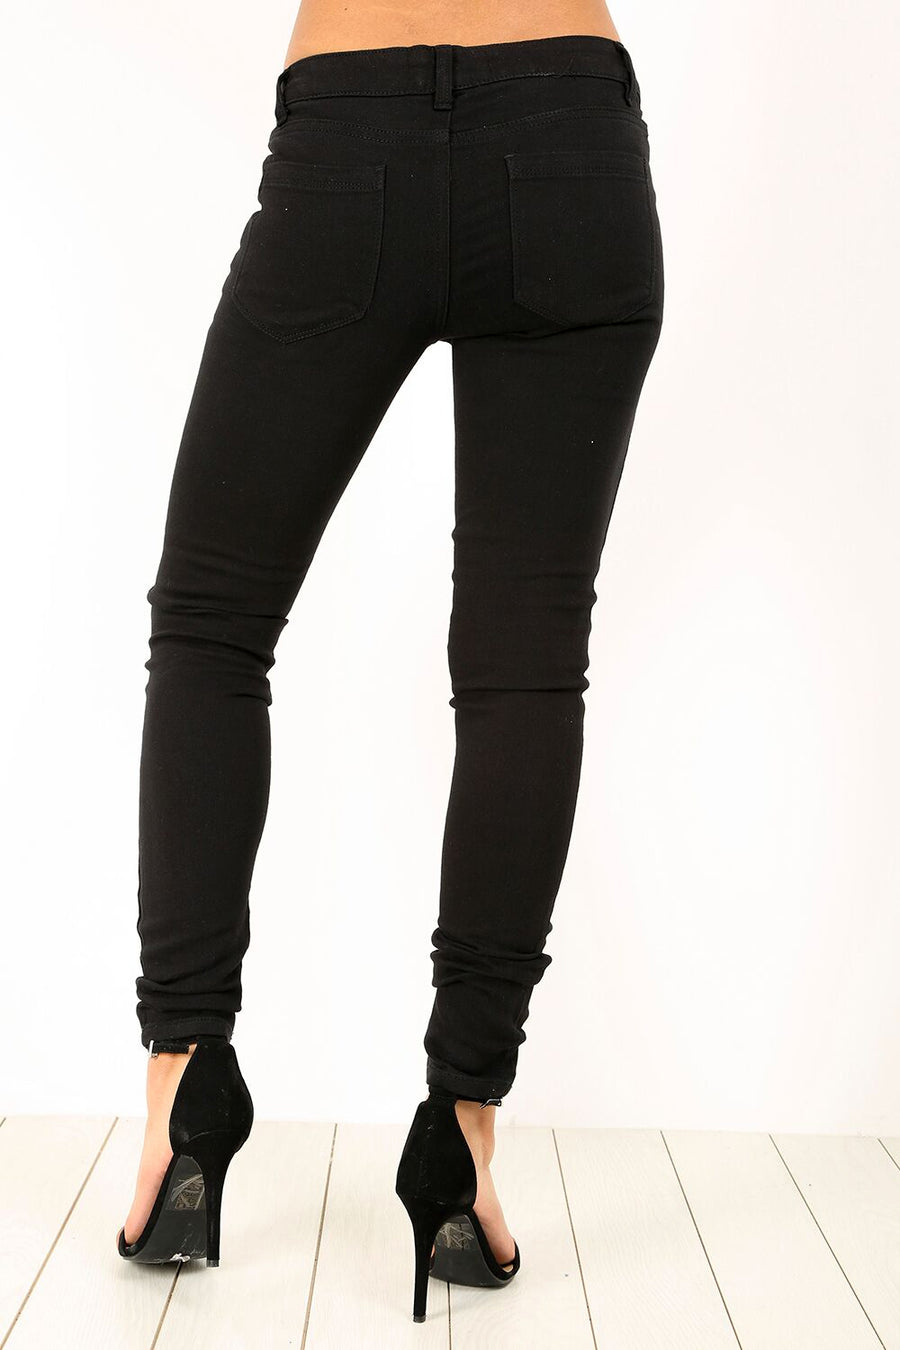 Mid Rise Stretch Black Skinny Denim Jeans - bejealous-com